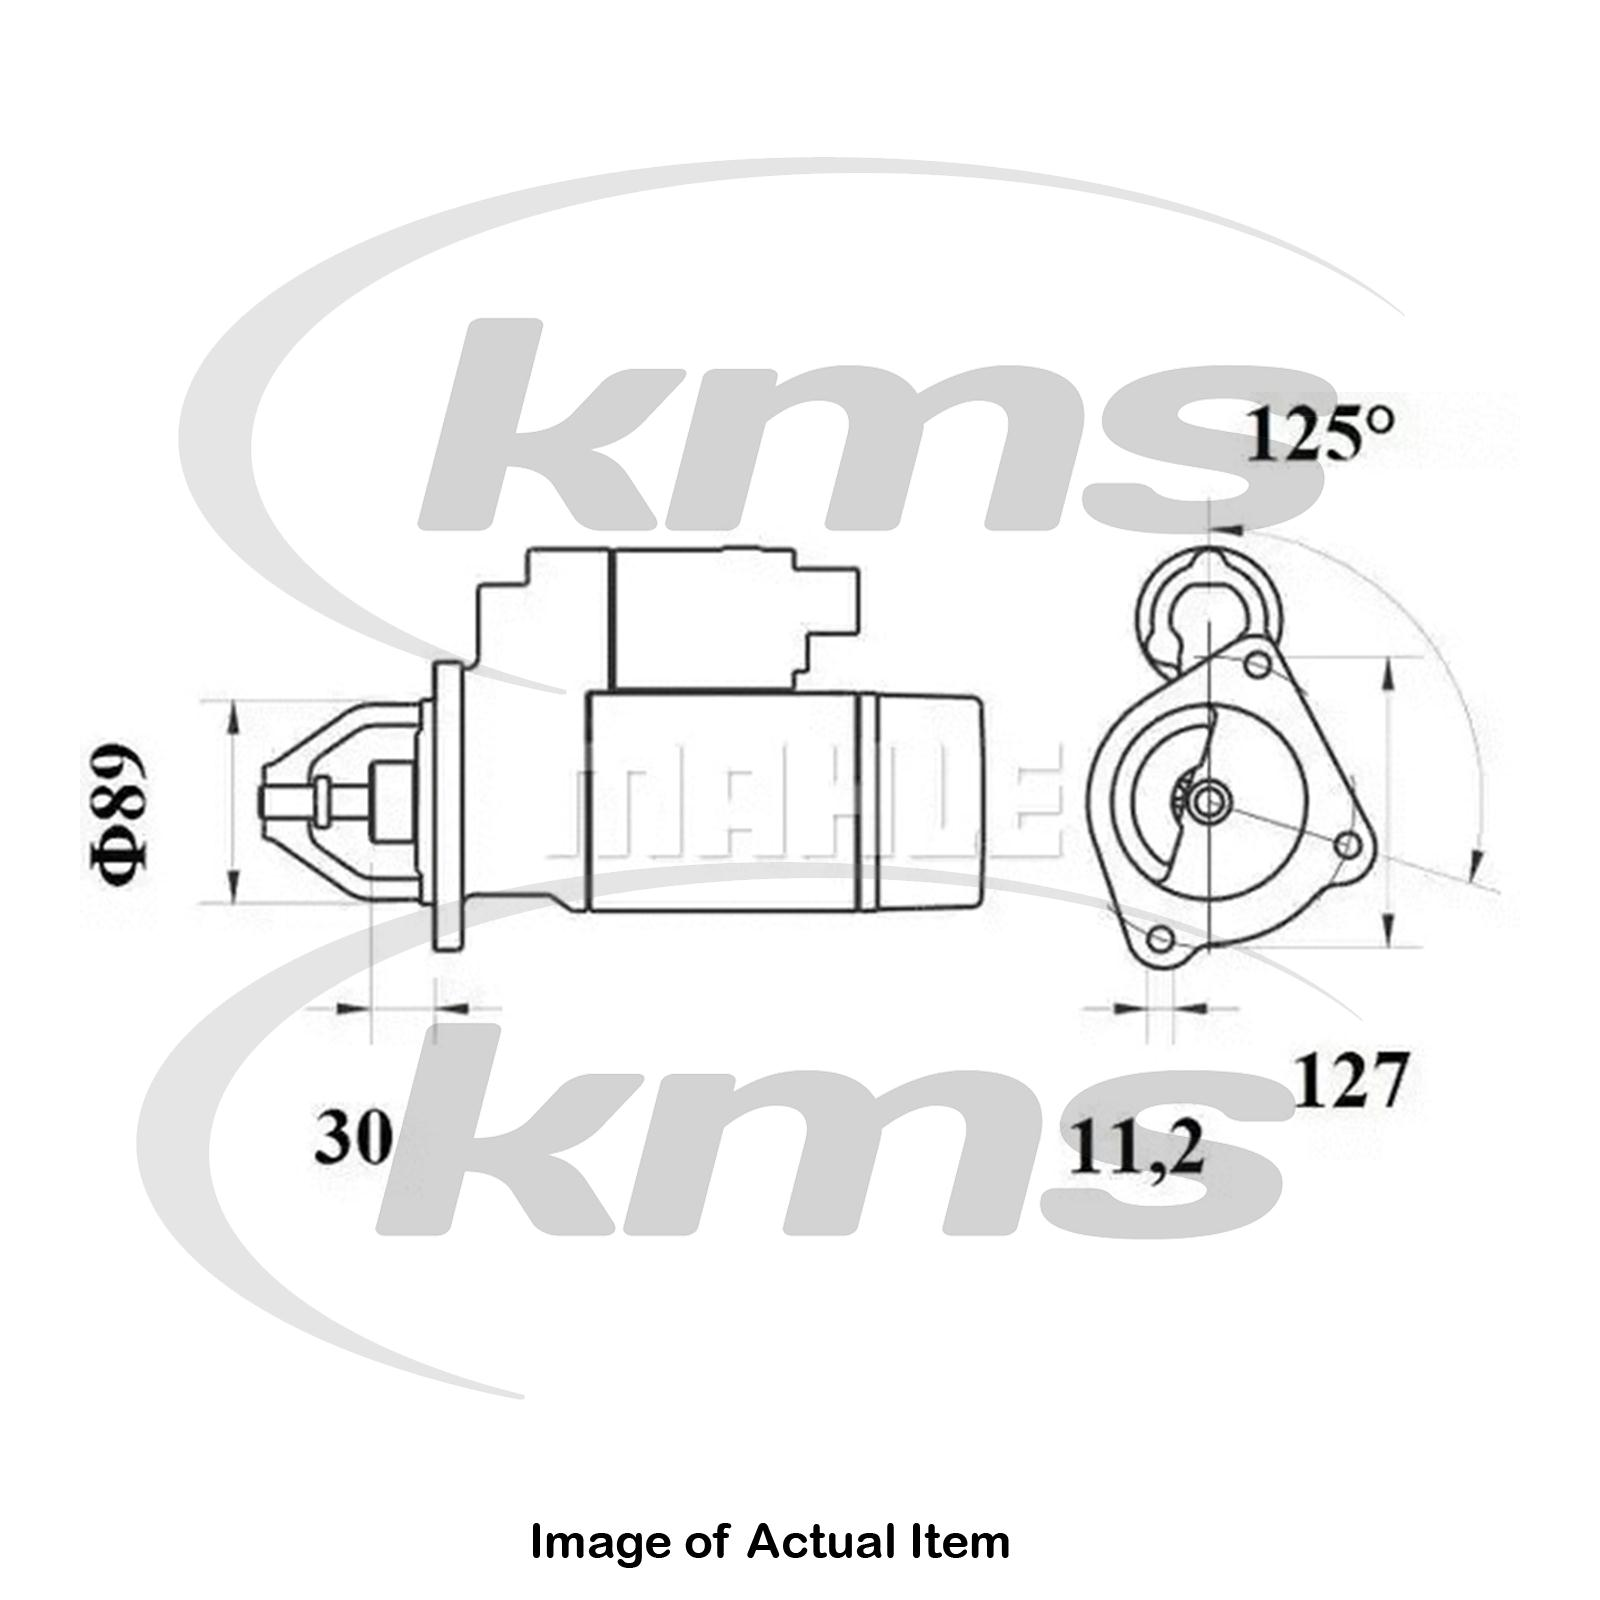 New Genuine Mahle Fuel Filter Kx 182 1d Top German Quality